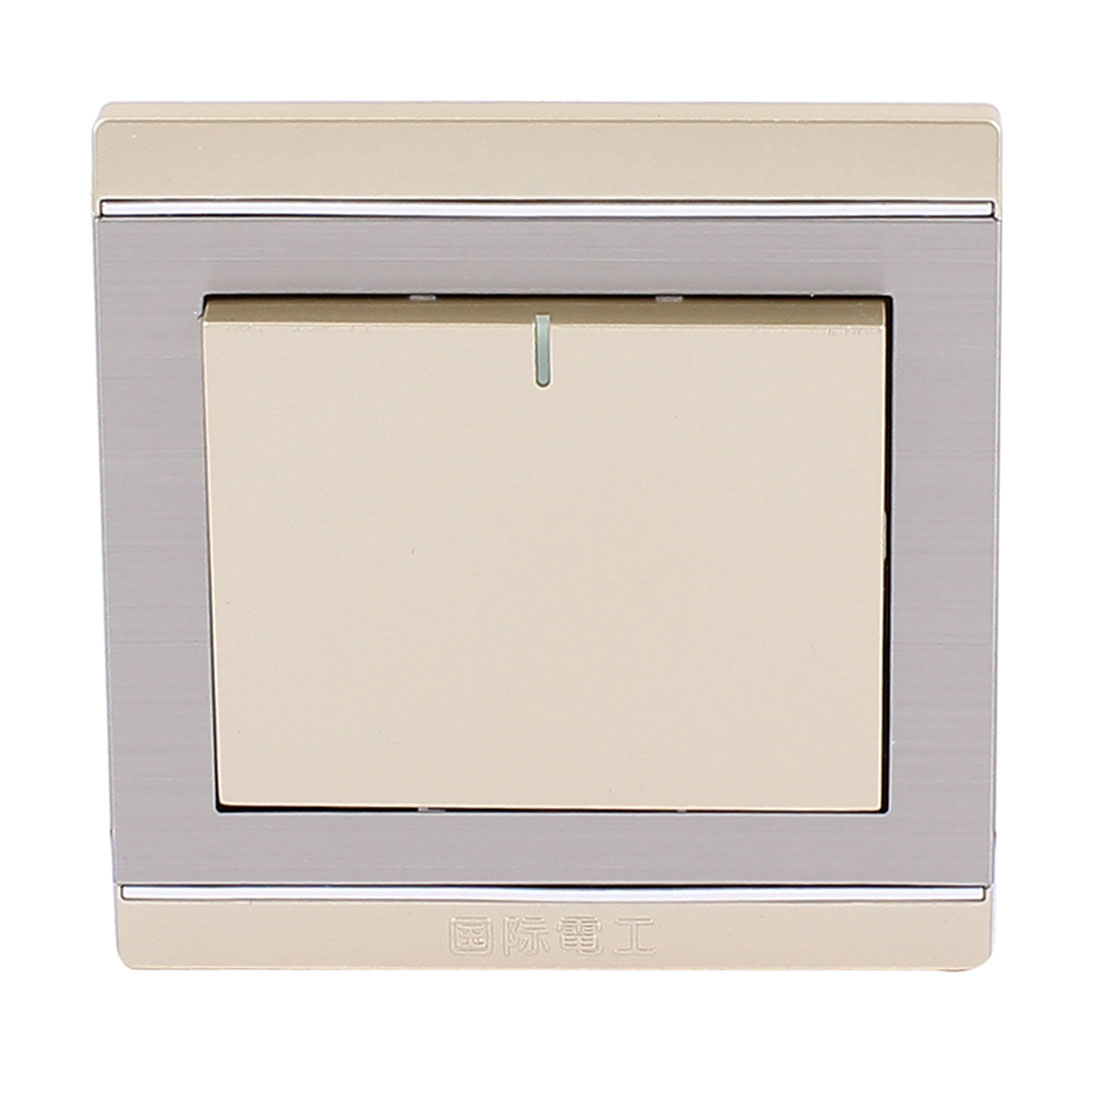 On/Off Press Button Type 1 Gang Wall Mount Switch Plate AC 250V 10A